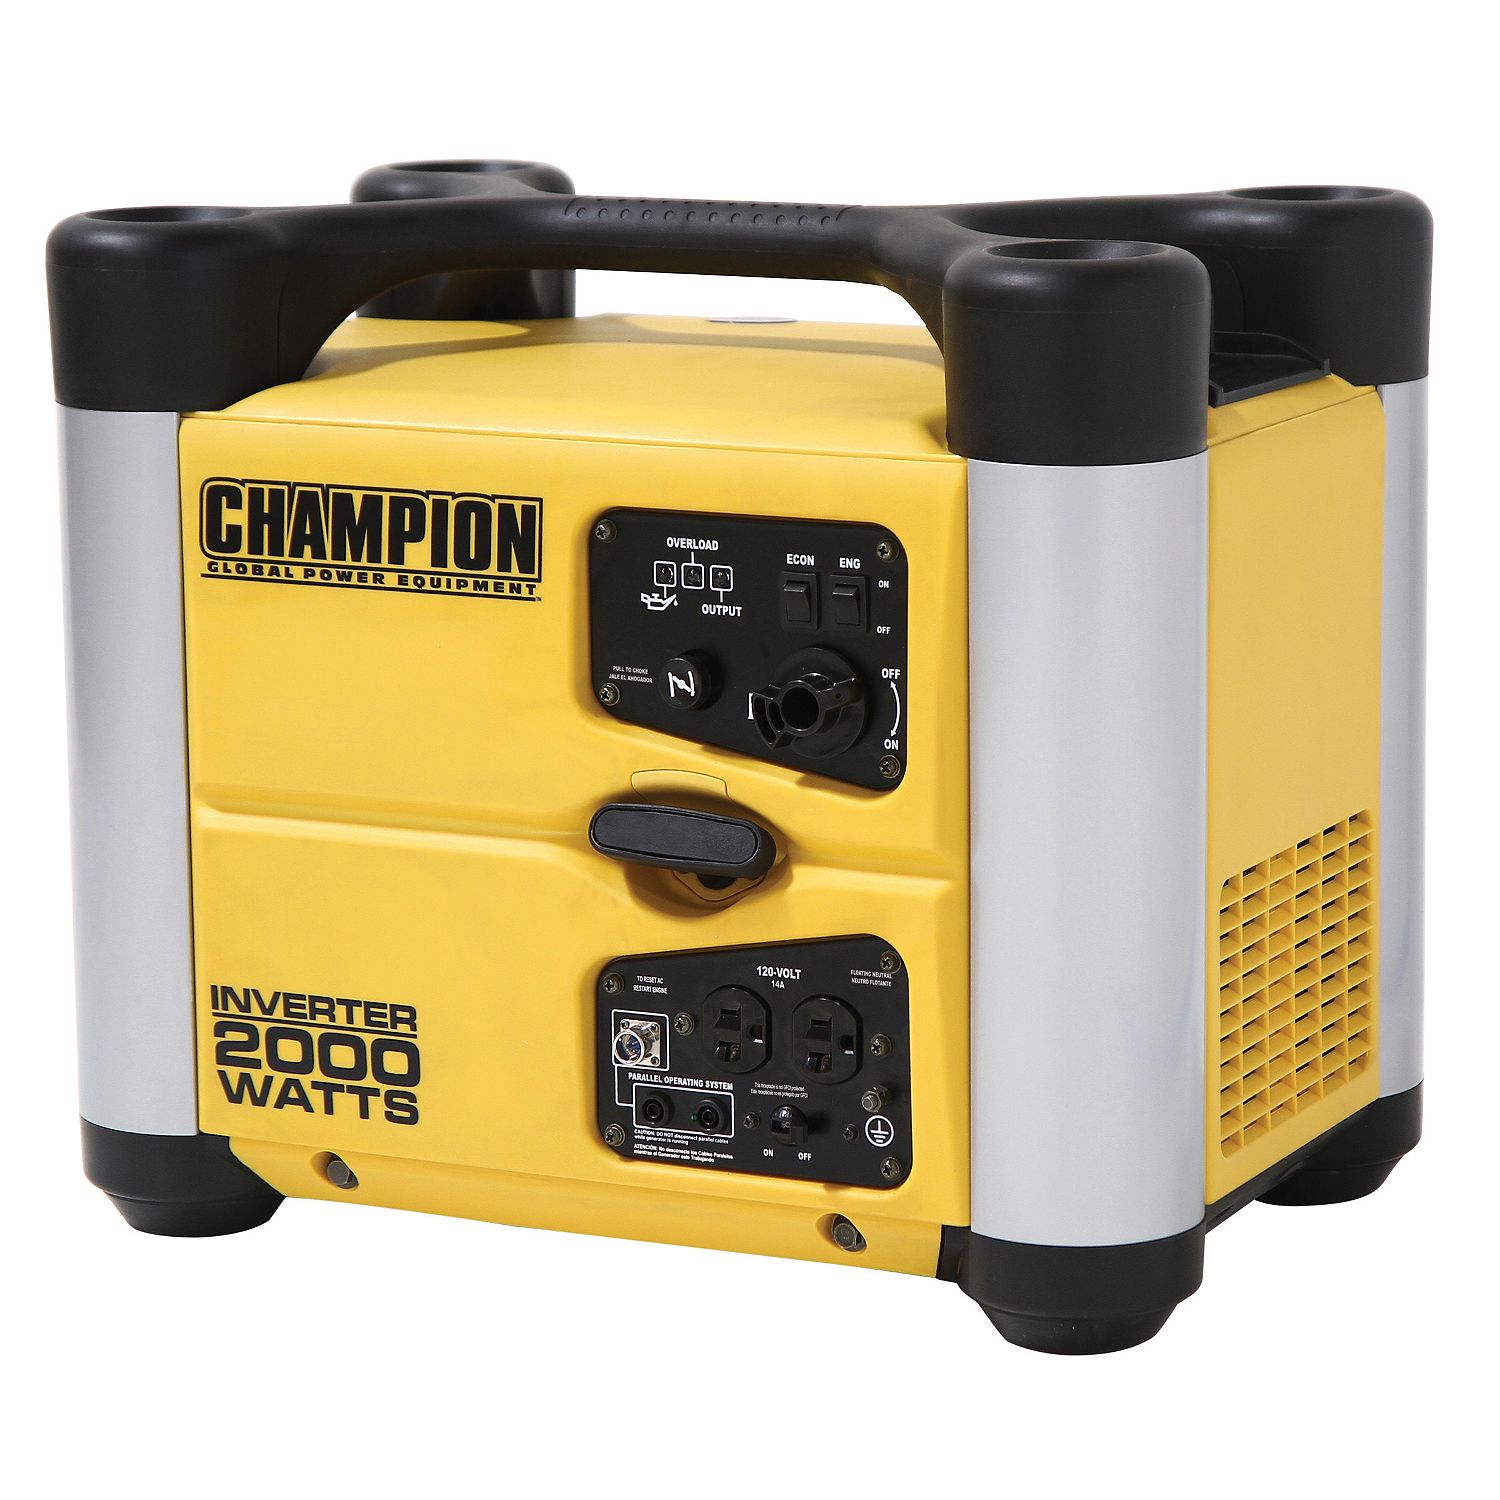 Polaris And Champion Portable Generators Being Added To